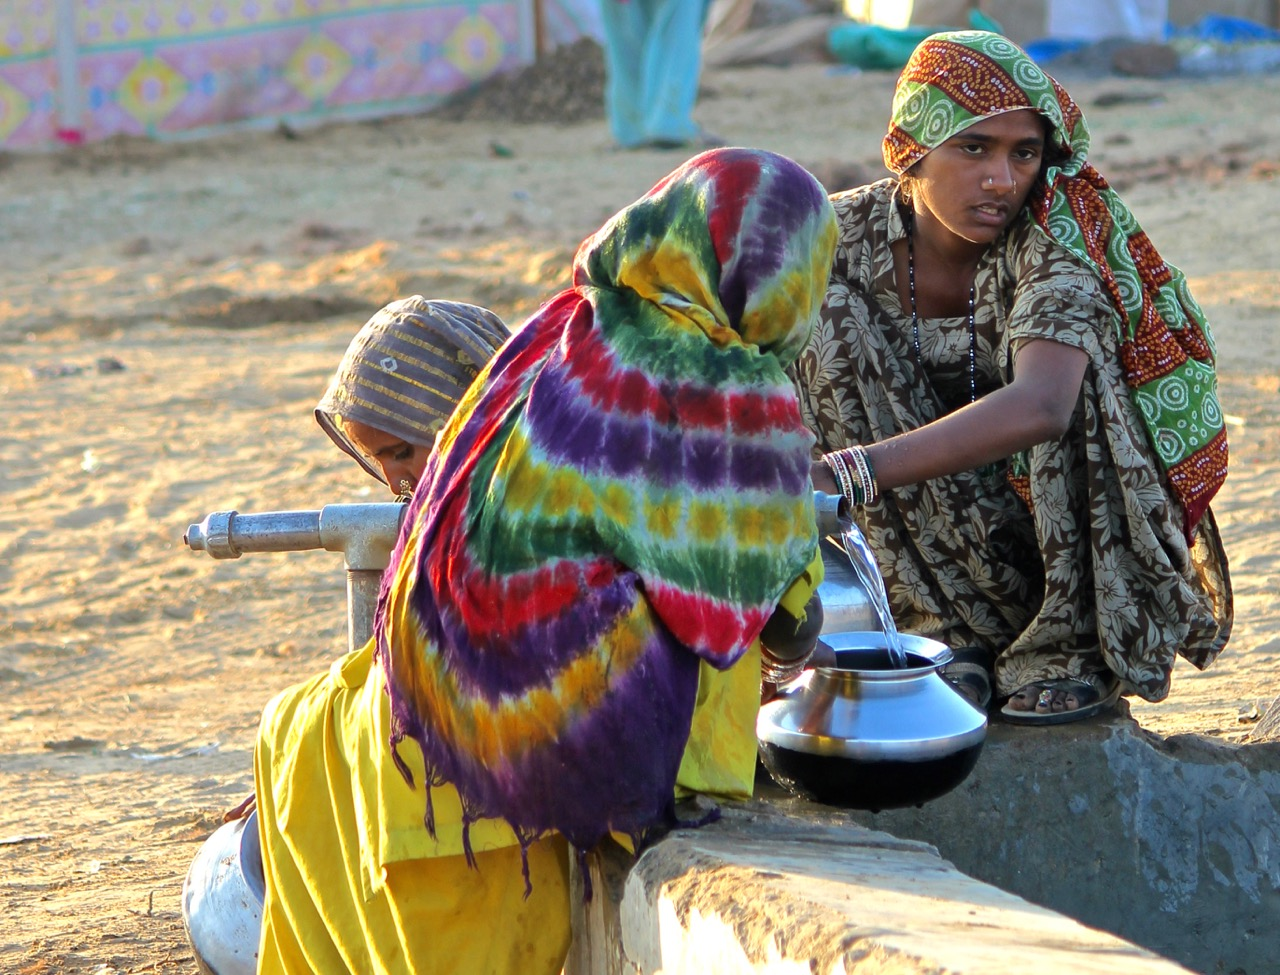 fetching water, Pushkar